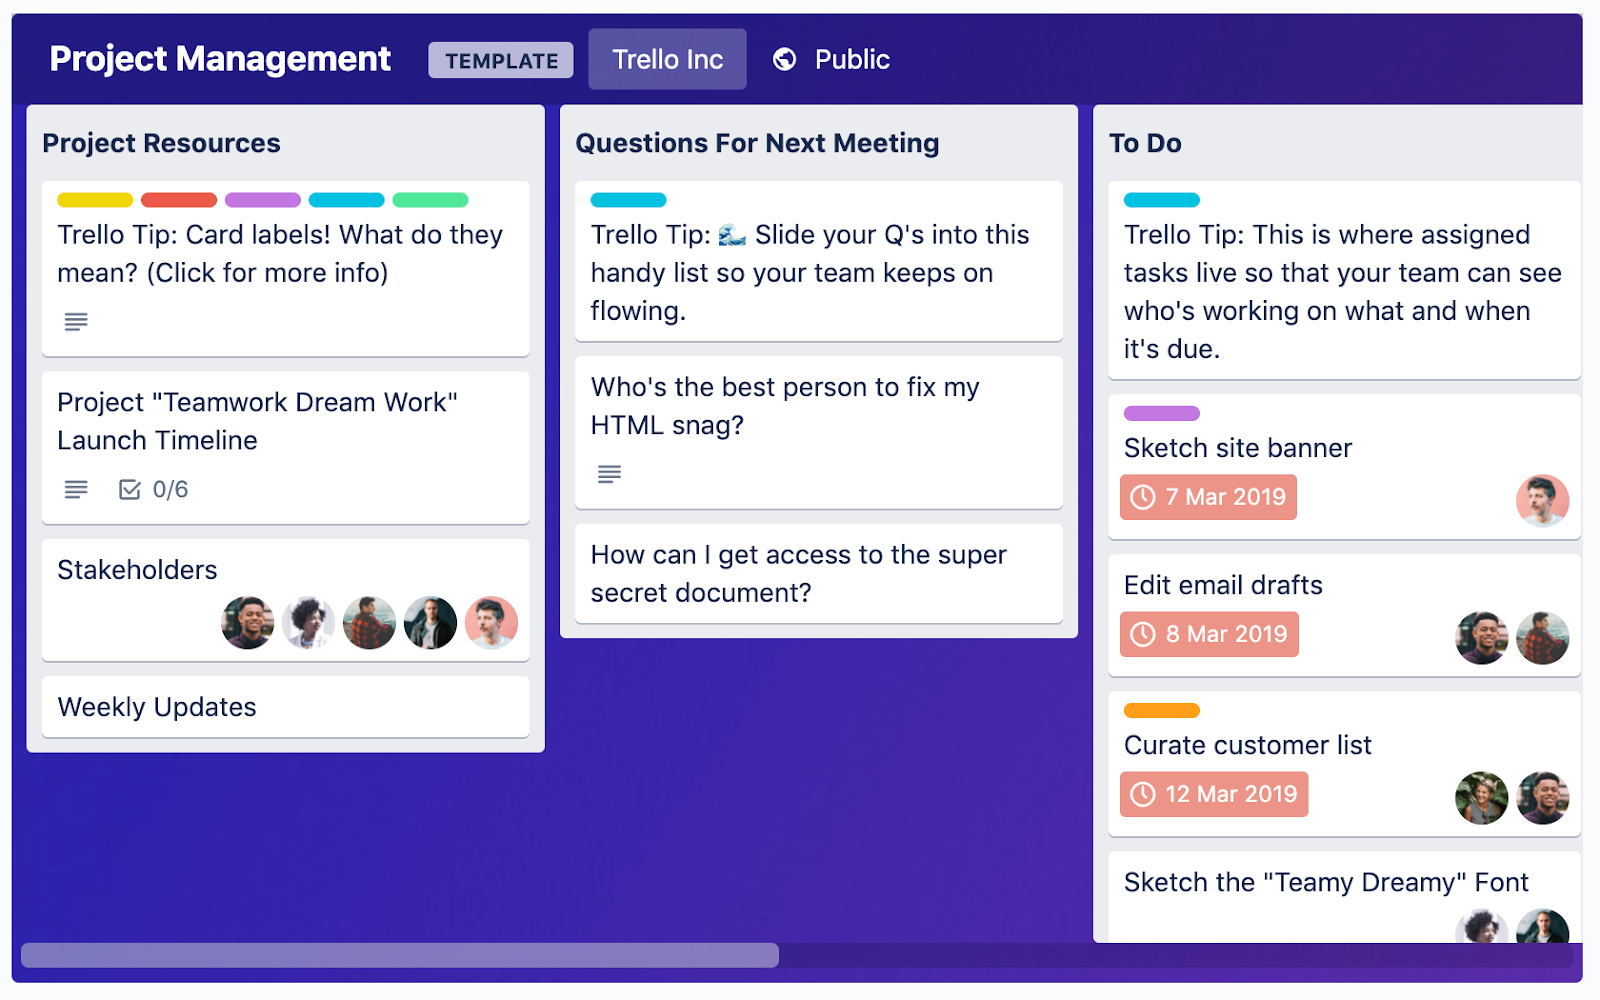 Project Management Tools for Agencies: Trello